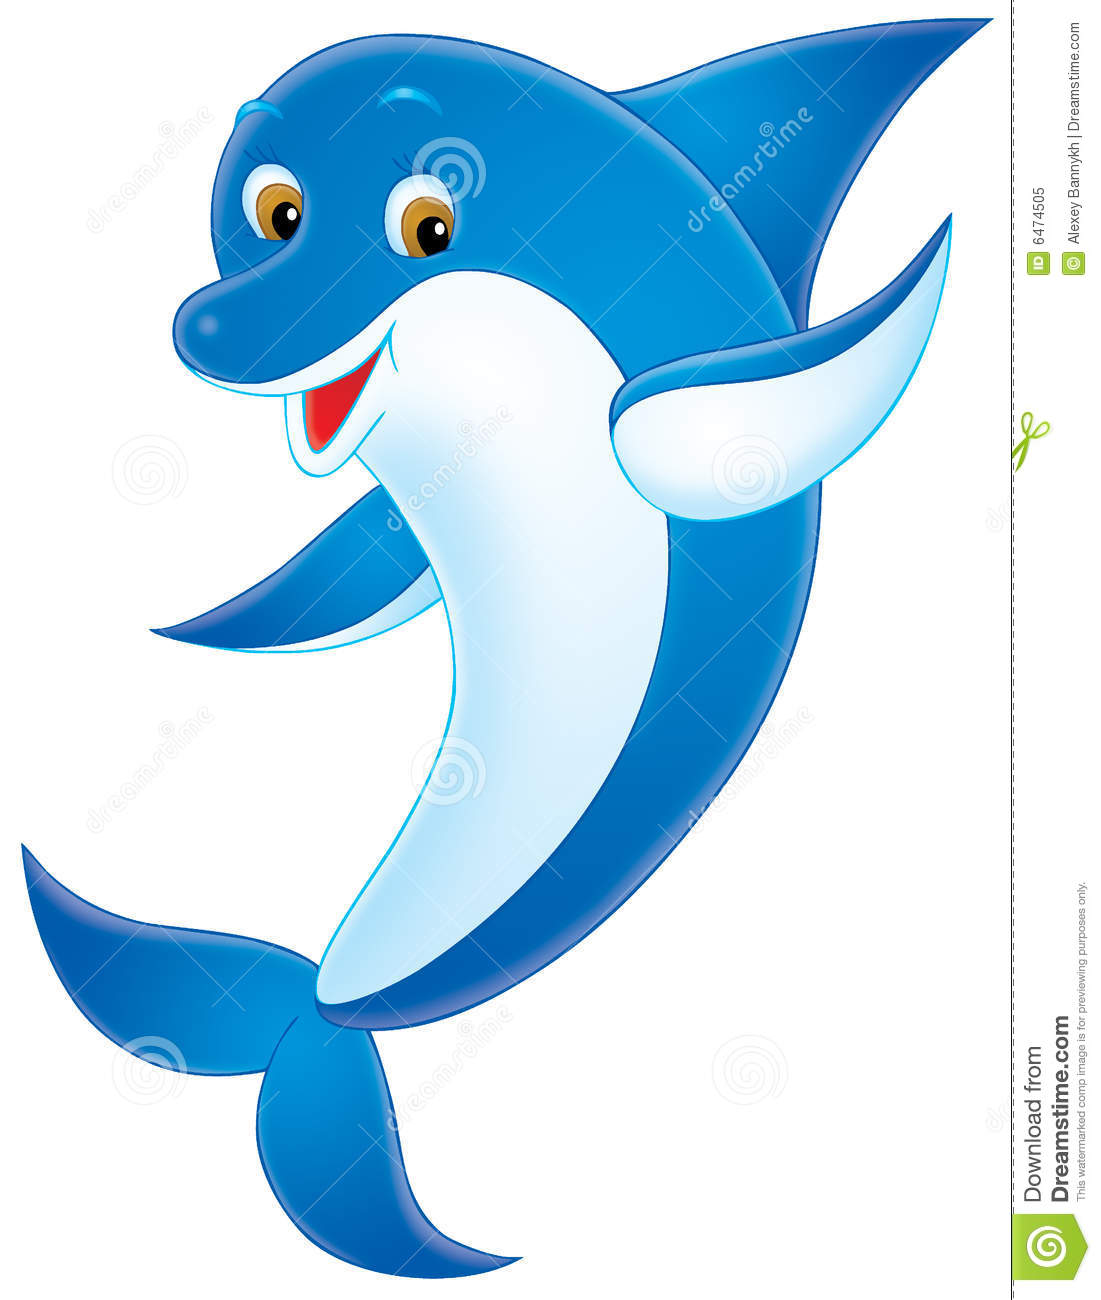 dolphin stock illustration illustration of funny cartoon 6474505 rh dreamstime com dolphin clipart black and white dolphin clip art free download